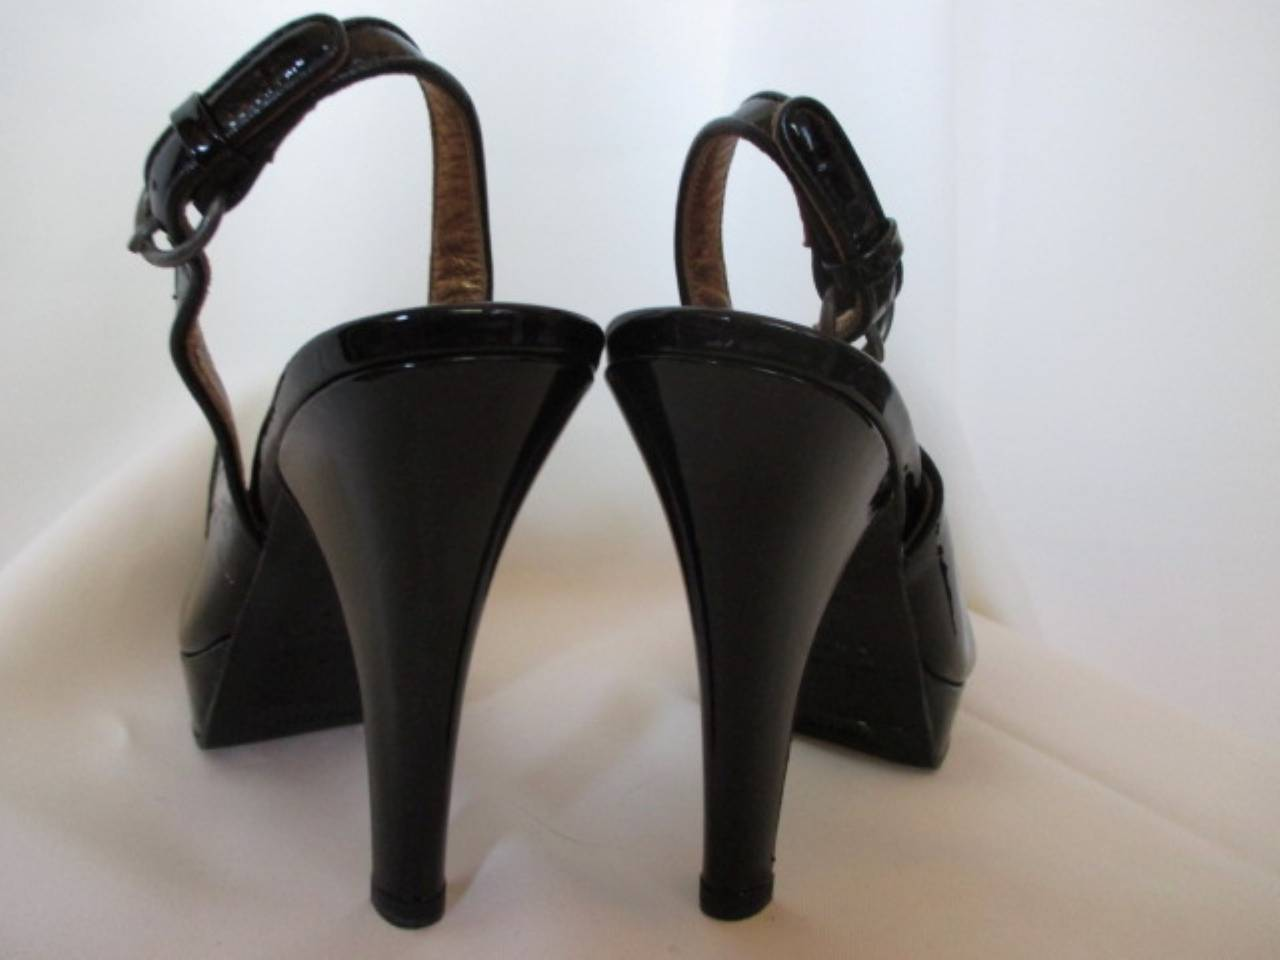 Black Miu Miu black patent leather heels size eu 37 For Sale